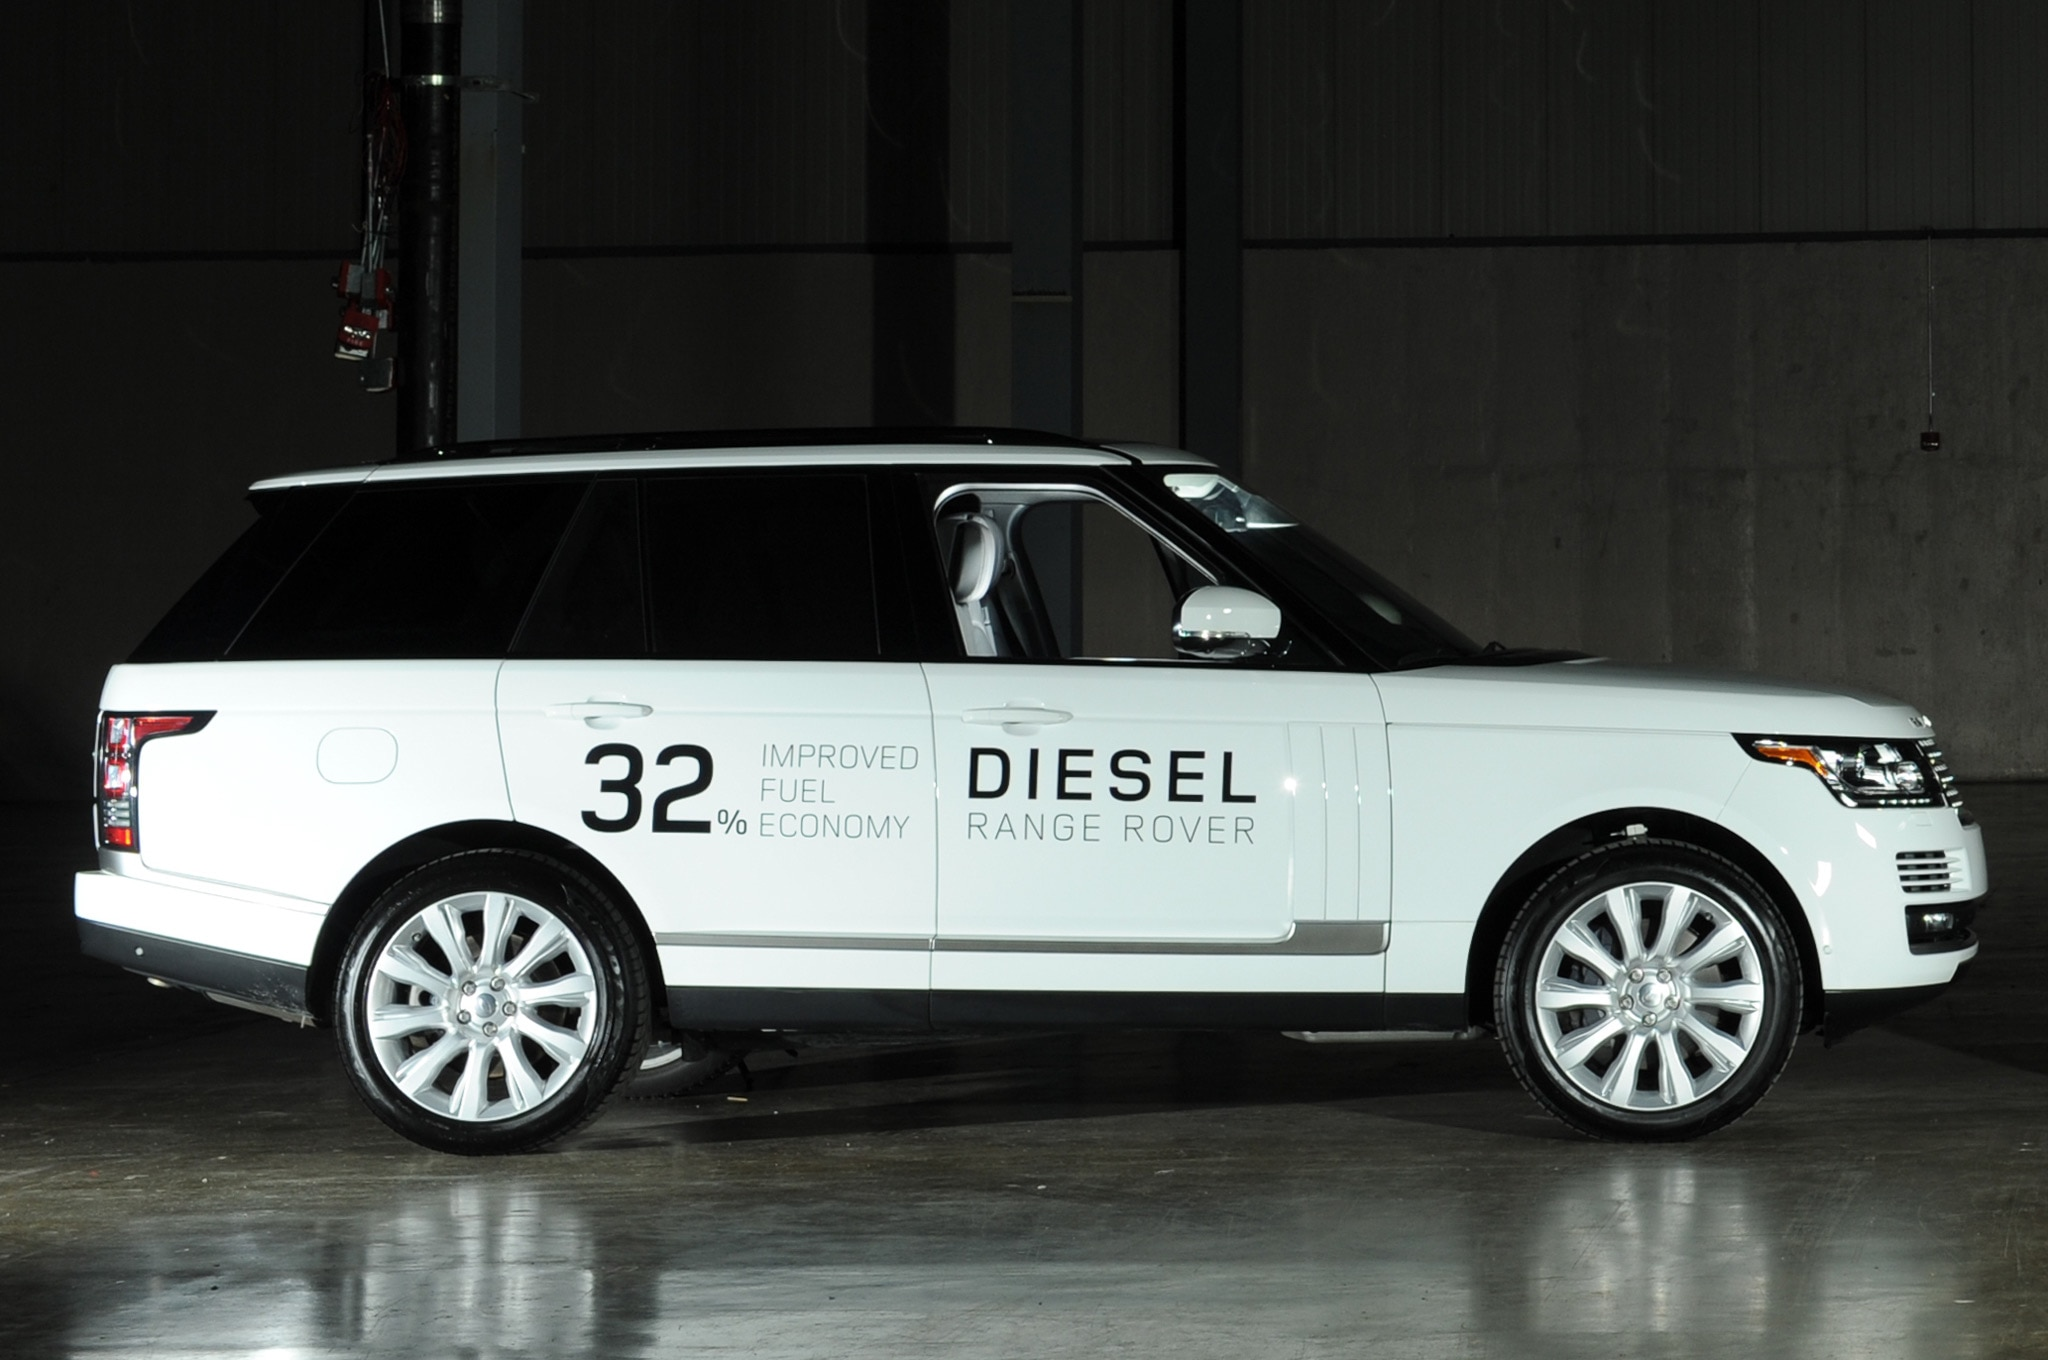 2016 Land Rover Range Rover Diesel Priced From $87,445